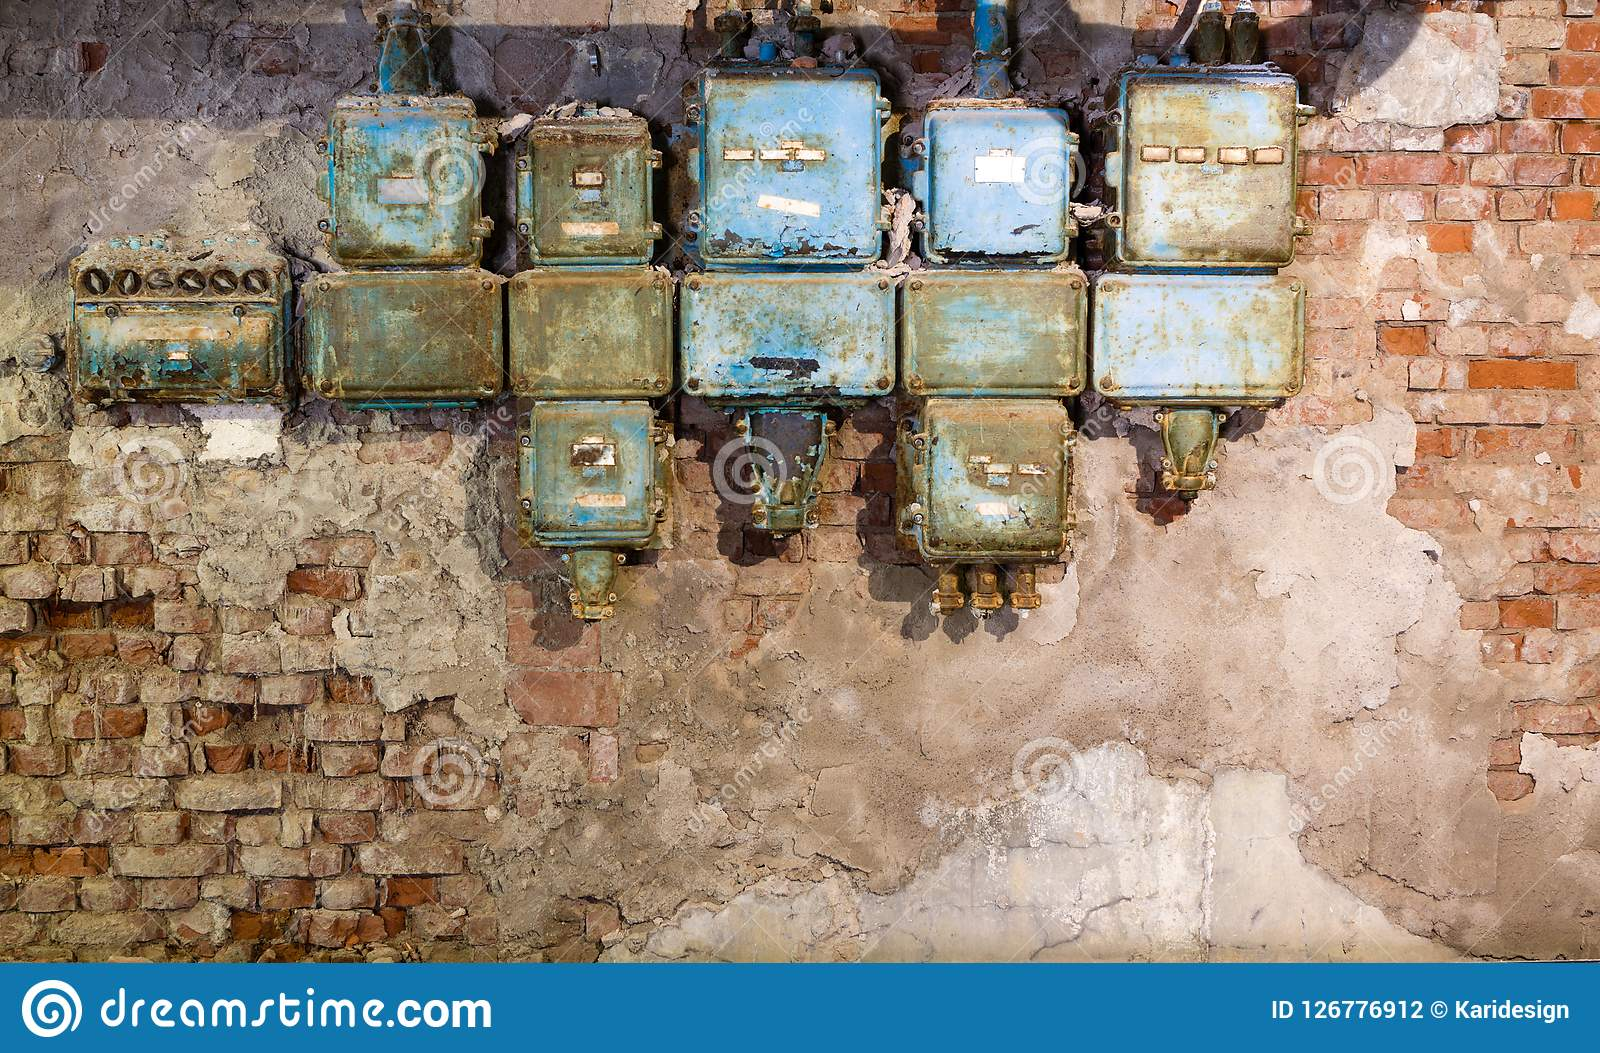 Broken Fuse Box Reveolution Of Wiring Diagram Old Holders In An Abandoned Factory Stock Photo Image Rh Dreamstime Com 12v